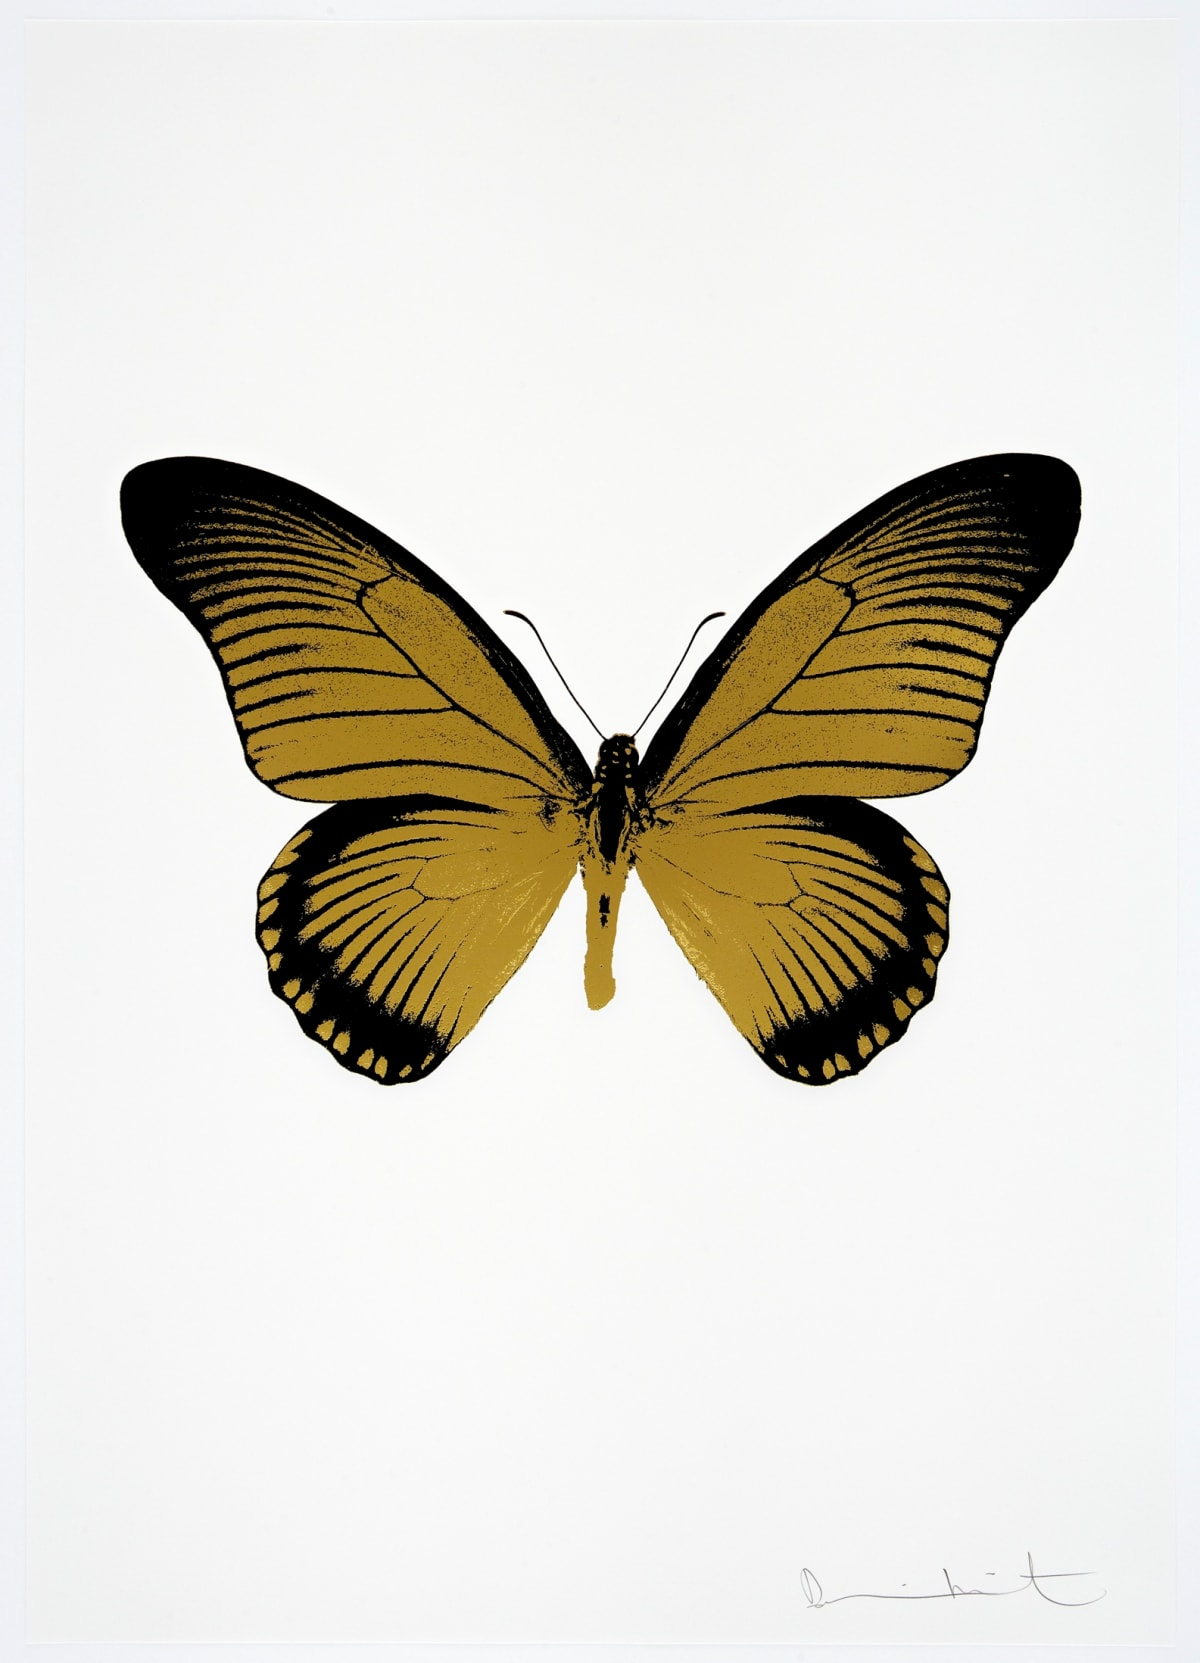 Damien Hirst The Souls IV - Oriental Gold/Raven Black Damien Hirst butterfly foil print for sale Damien Hirst print for sale , 2010 2 colour foil block on 300gsm Arches 88 archival paper. Signed and numbered. Published by Paul Stolper and Other Criteria 72 x 51cm OC8012 / 1418-35 Edition of 15